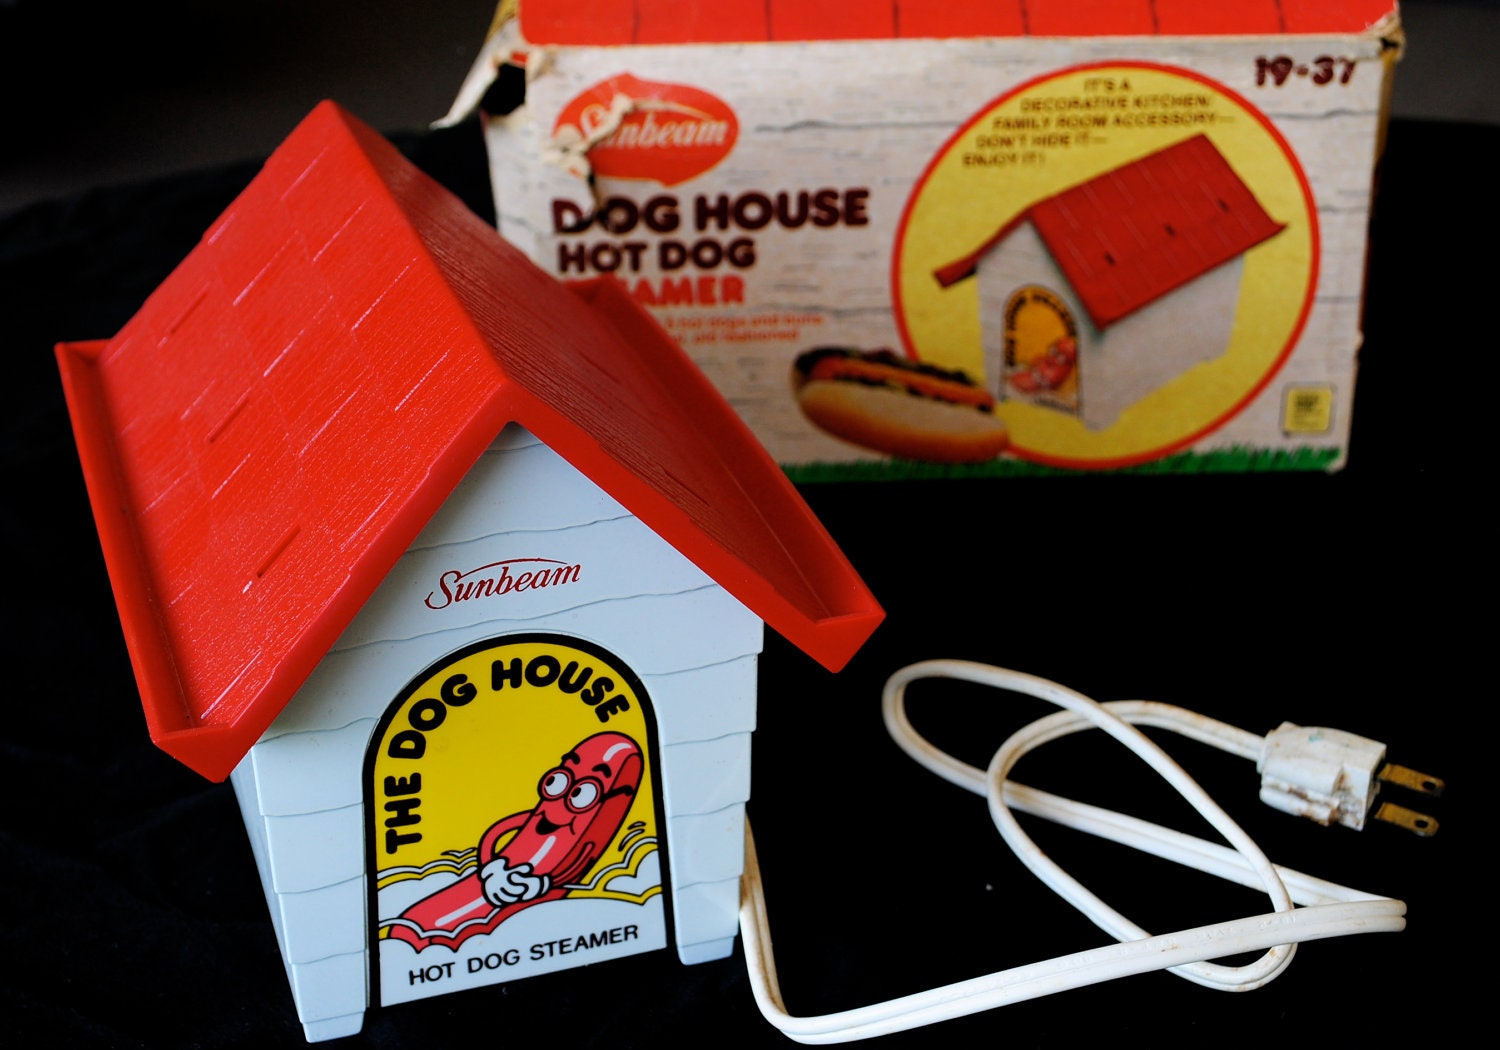 Dog House Hot Dogs